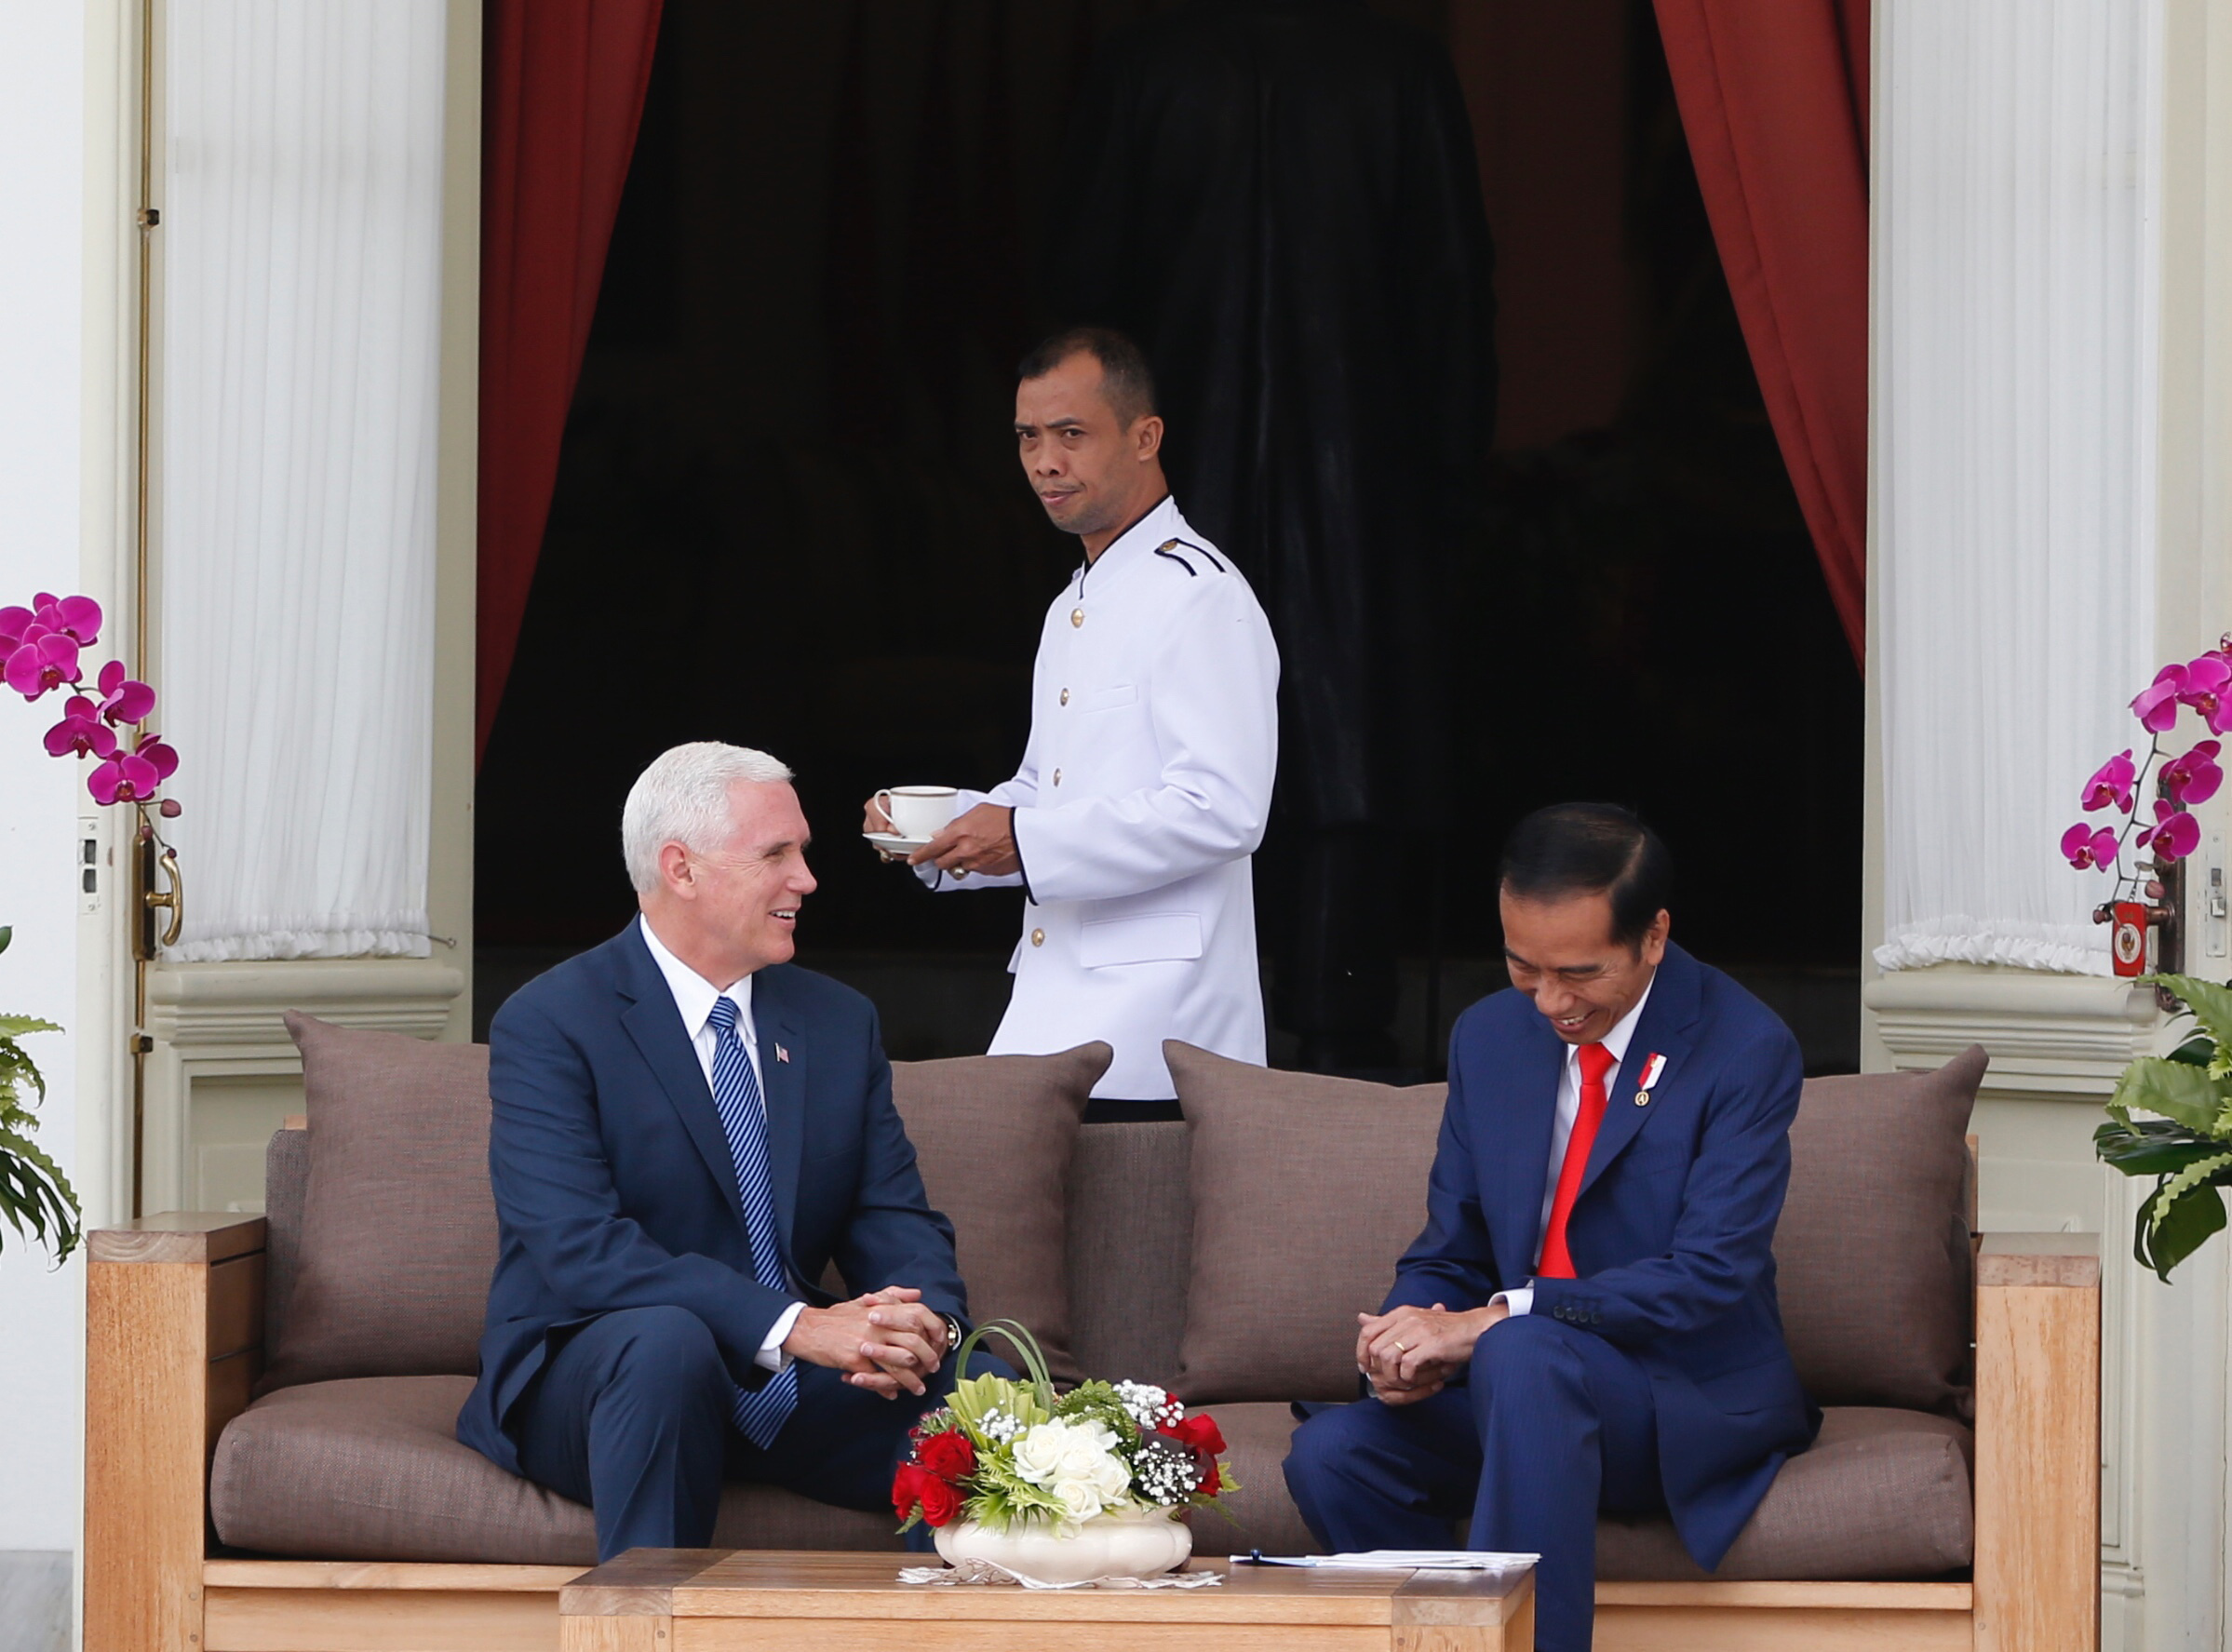 Indonesia US Pence-2 U.S. Vice President Mike Pence, left, meets with Indonesian President Joko Widodo at the presidential palace in Jakarta, Indonesia Thursday, April 20, 2017.(Darren Whiteside/Pool Photo via AP)